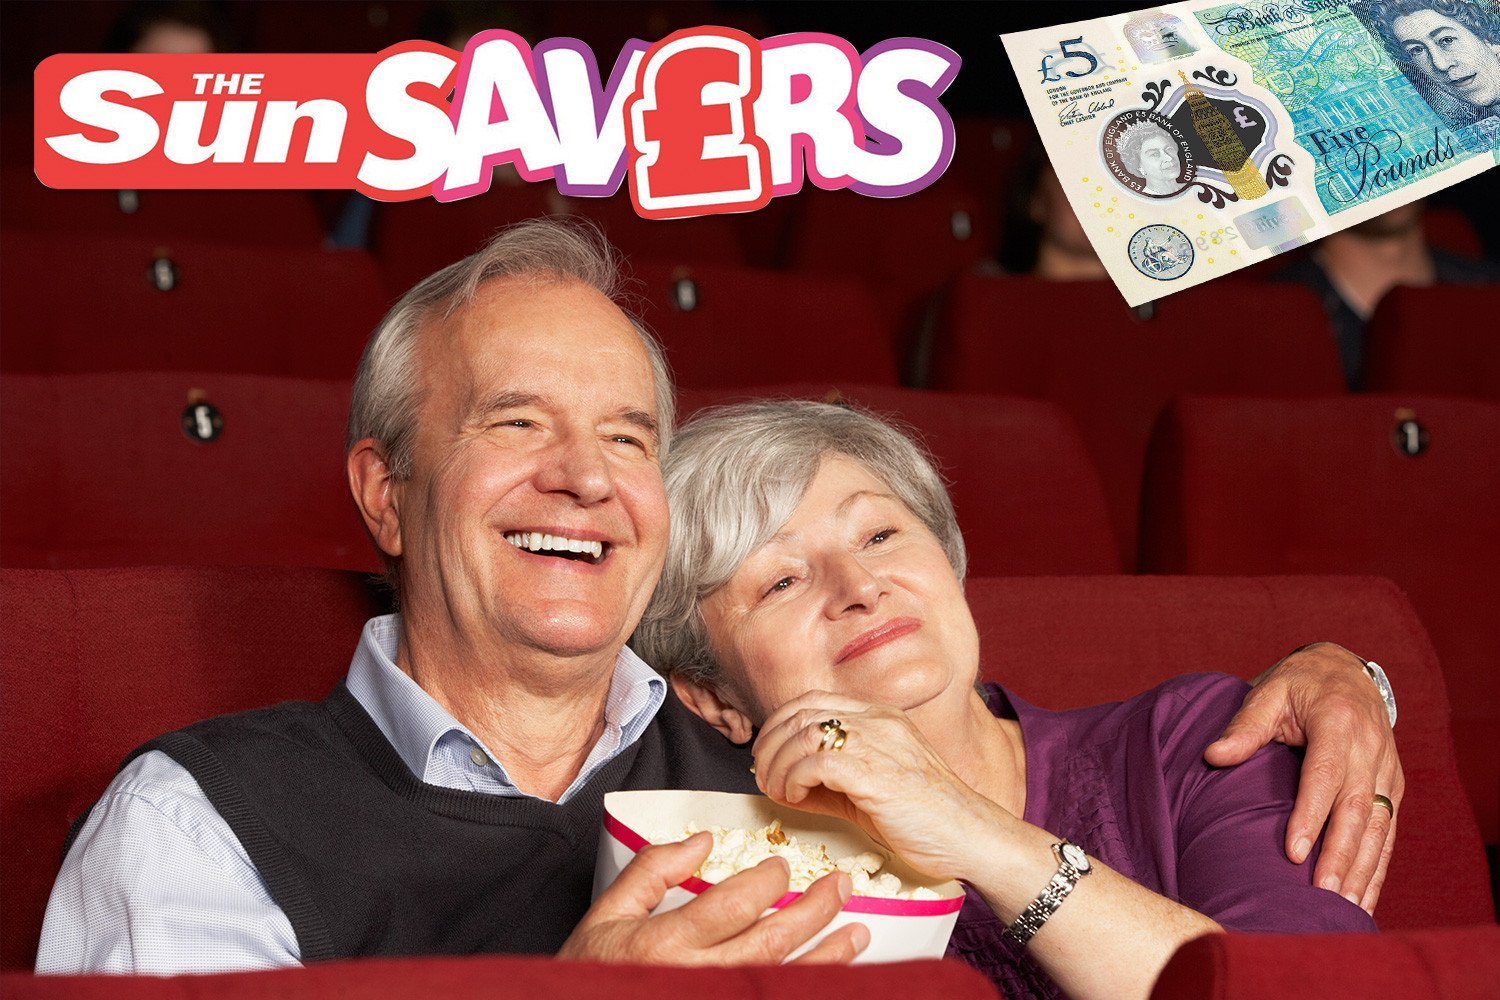 Make gran plans with the best cinema, meal and shopping deals for older folk — plus win £15,000 on the Sun Savers Raffle